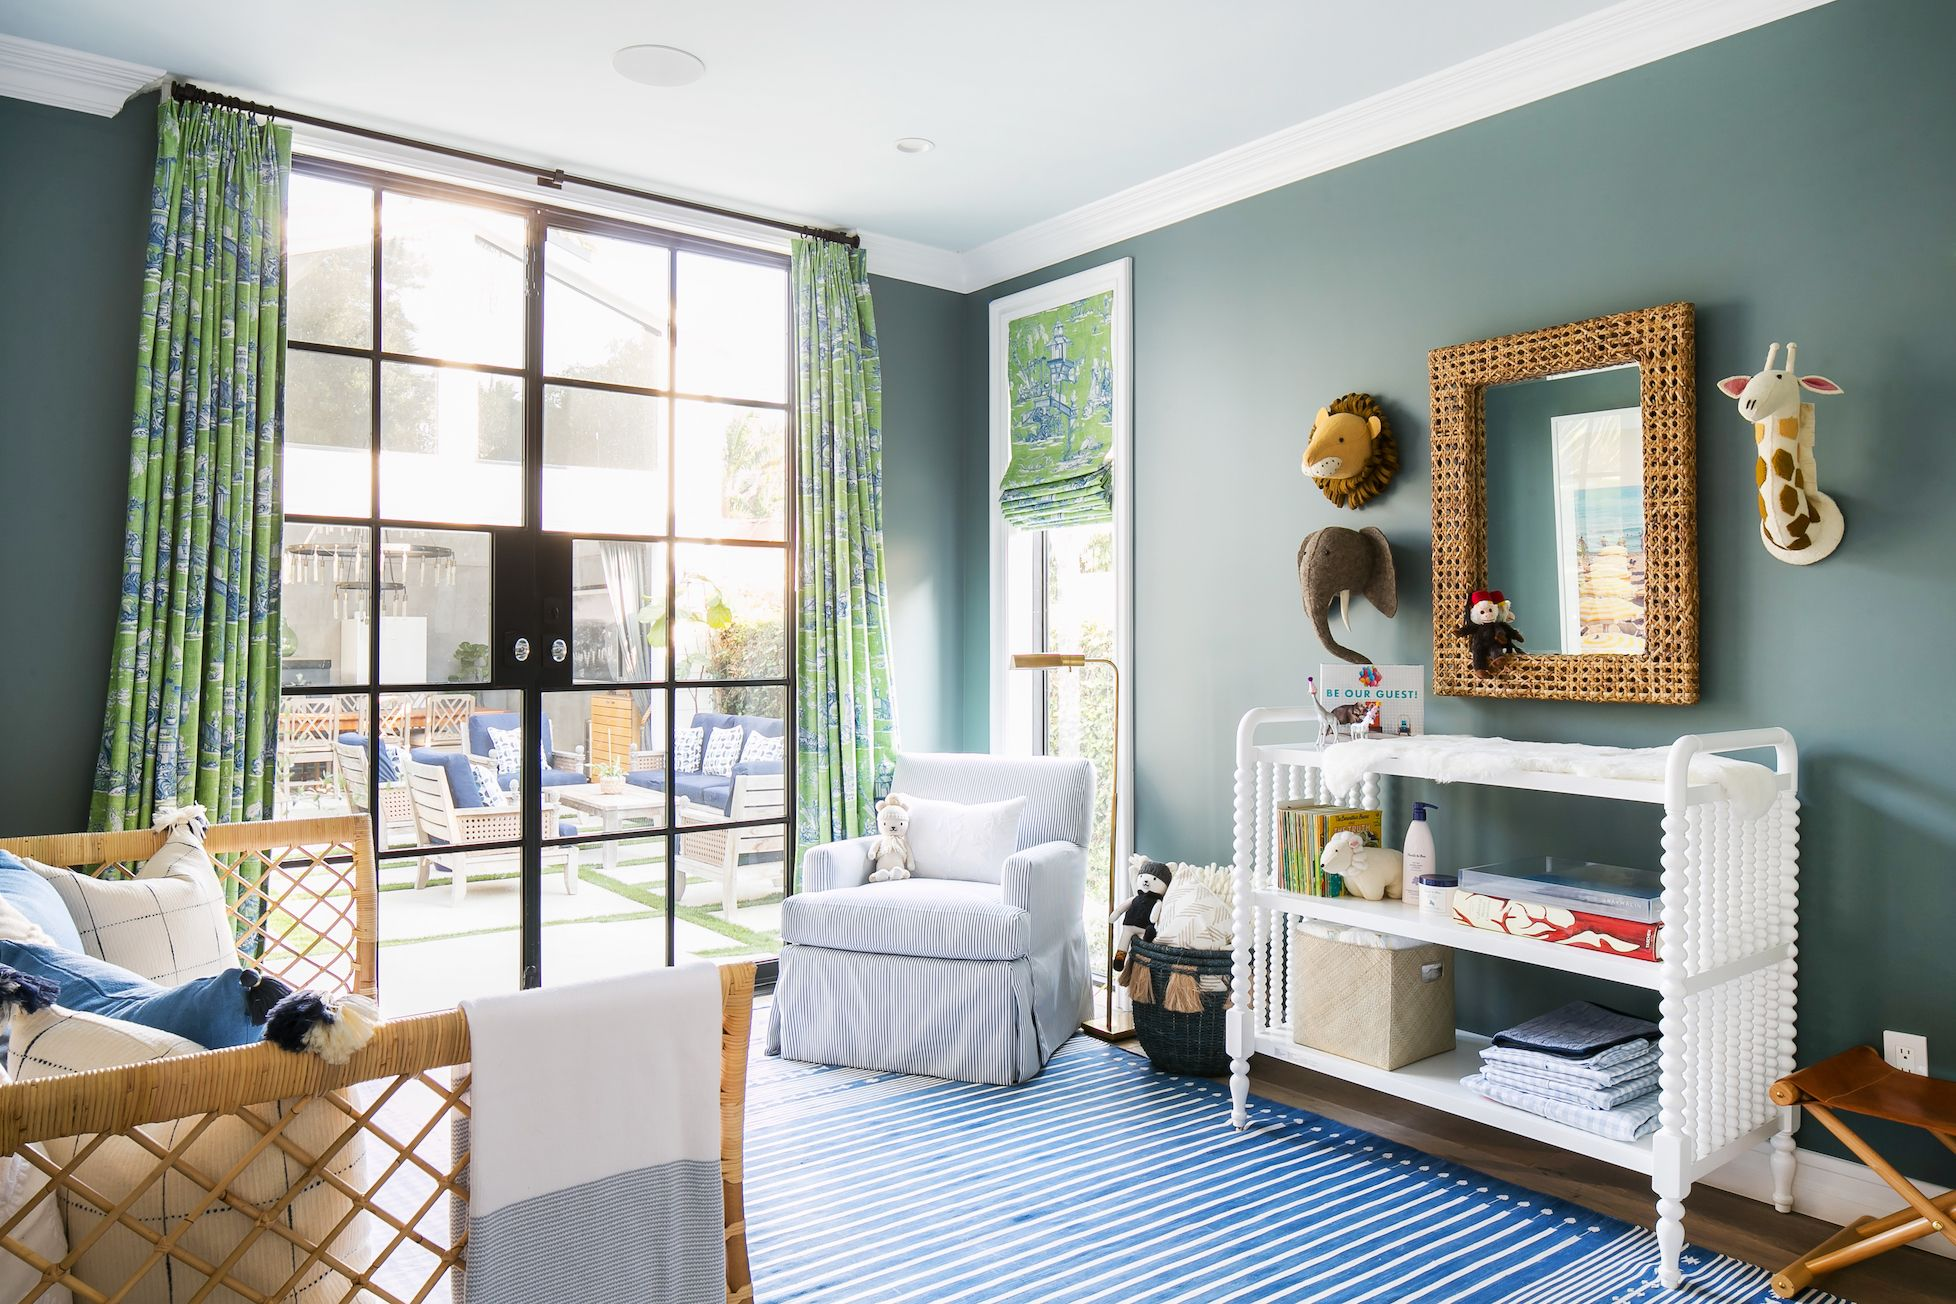 Renover Malin Photographer Gray Malin Reveals His Twins Playroom Design